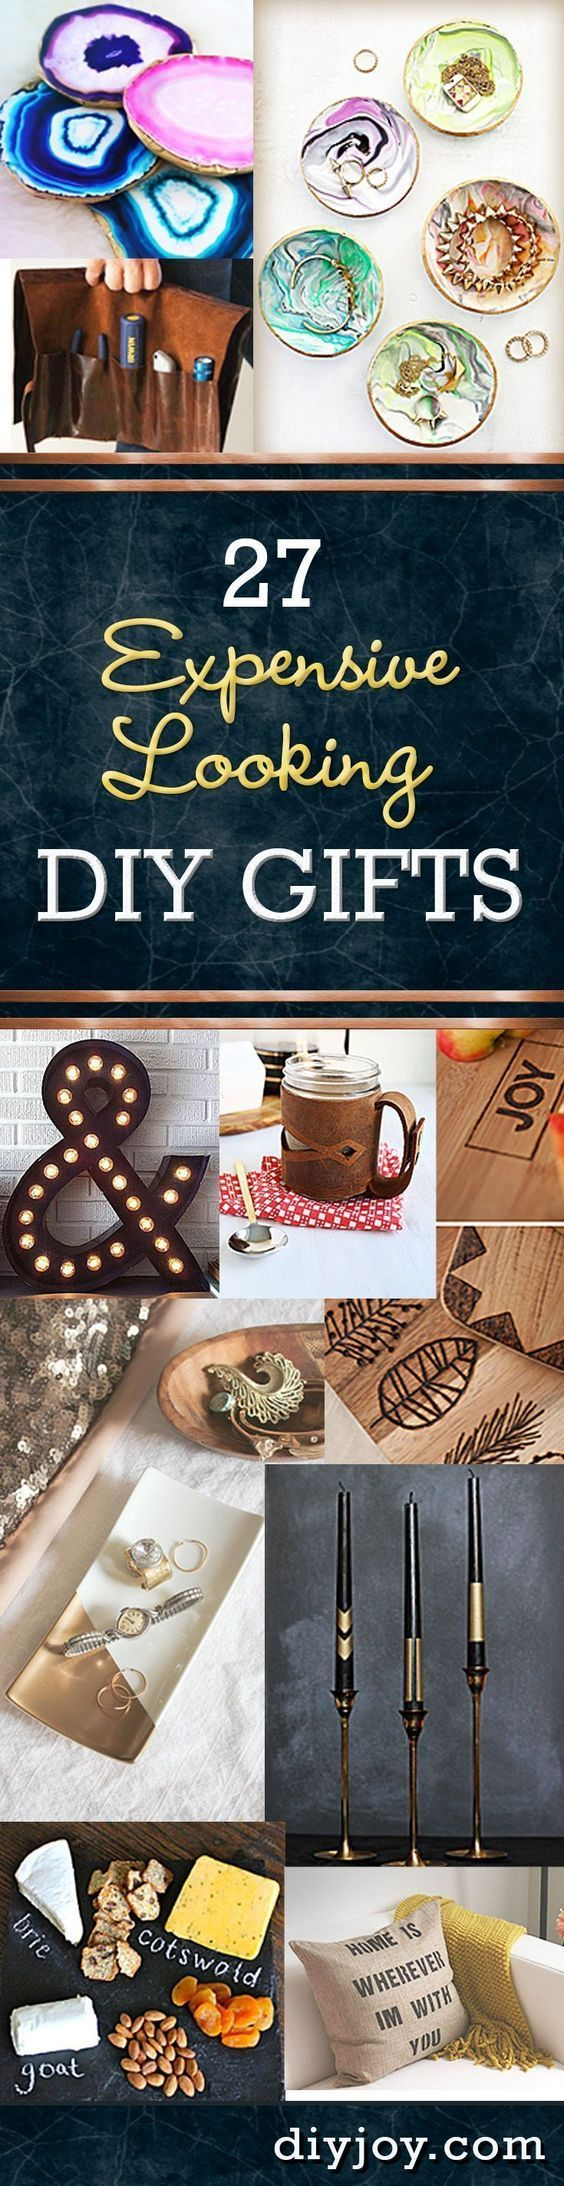 Inexpensive DIY Gifts and Creative Crafts and Projects that Make Cool DIY Gift Ideas CHEAP! Cheap DIY Ideas for Handmade Christmas Presents, Holiday Gifts and Birthday Gift - Step by Step Tutorials and Instructions